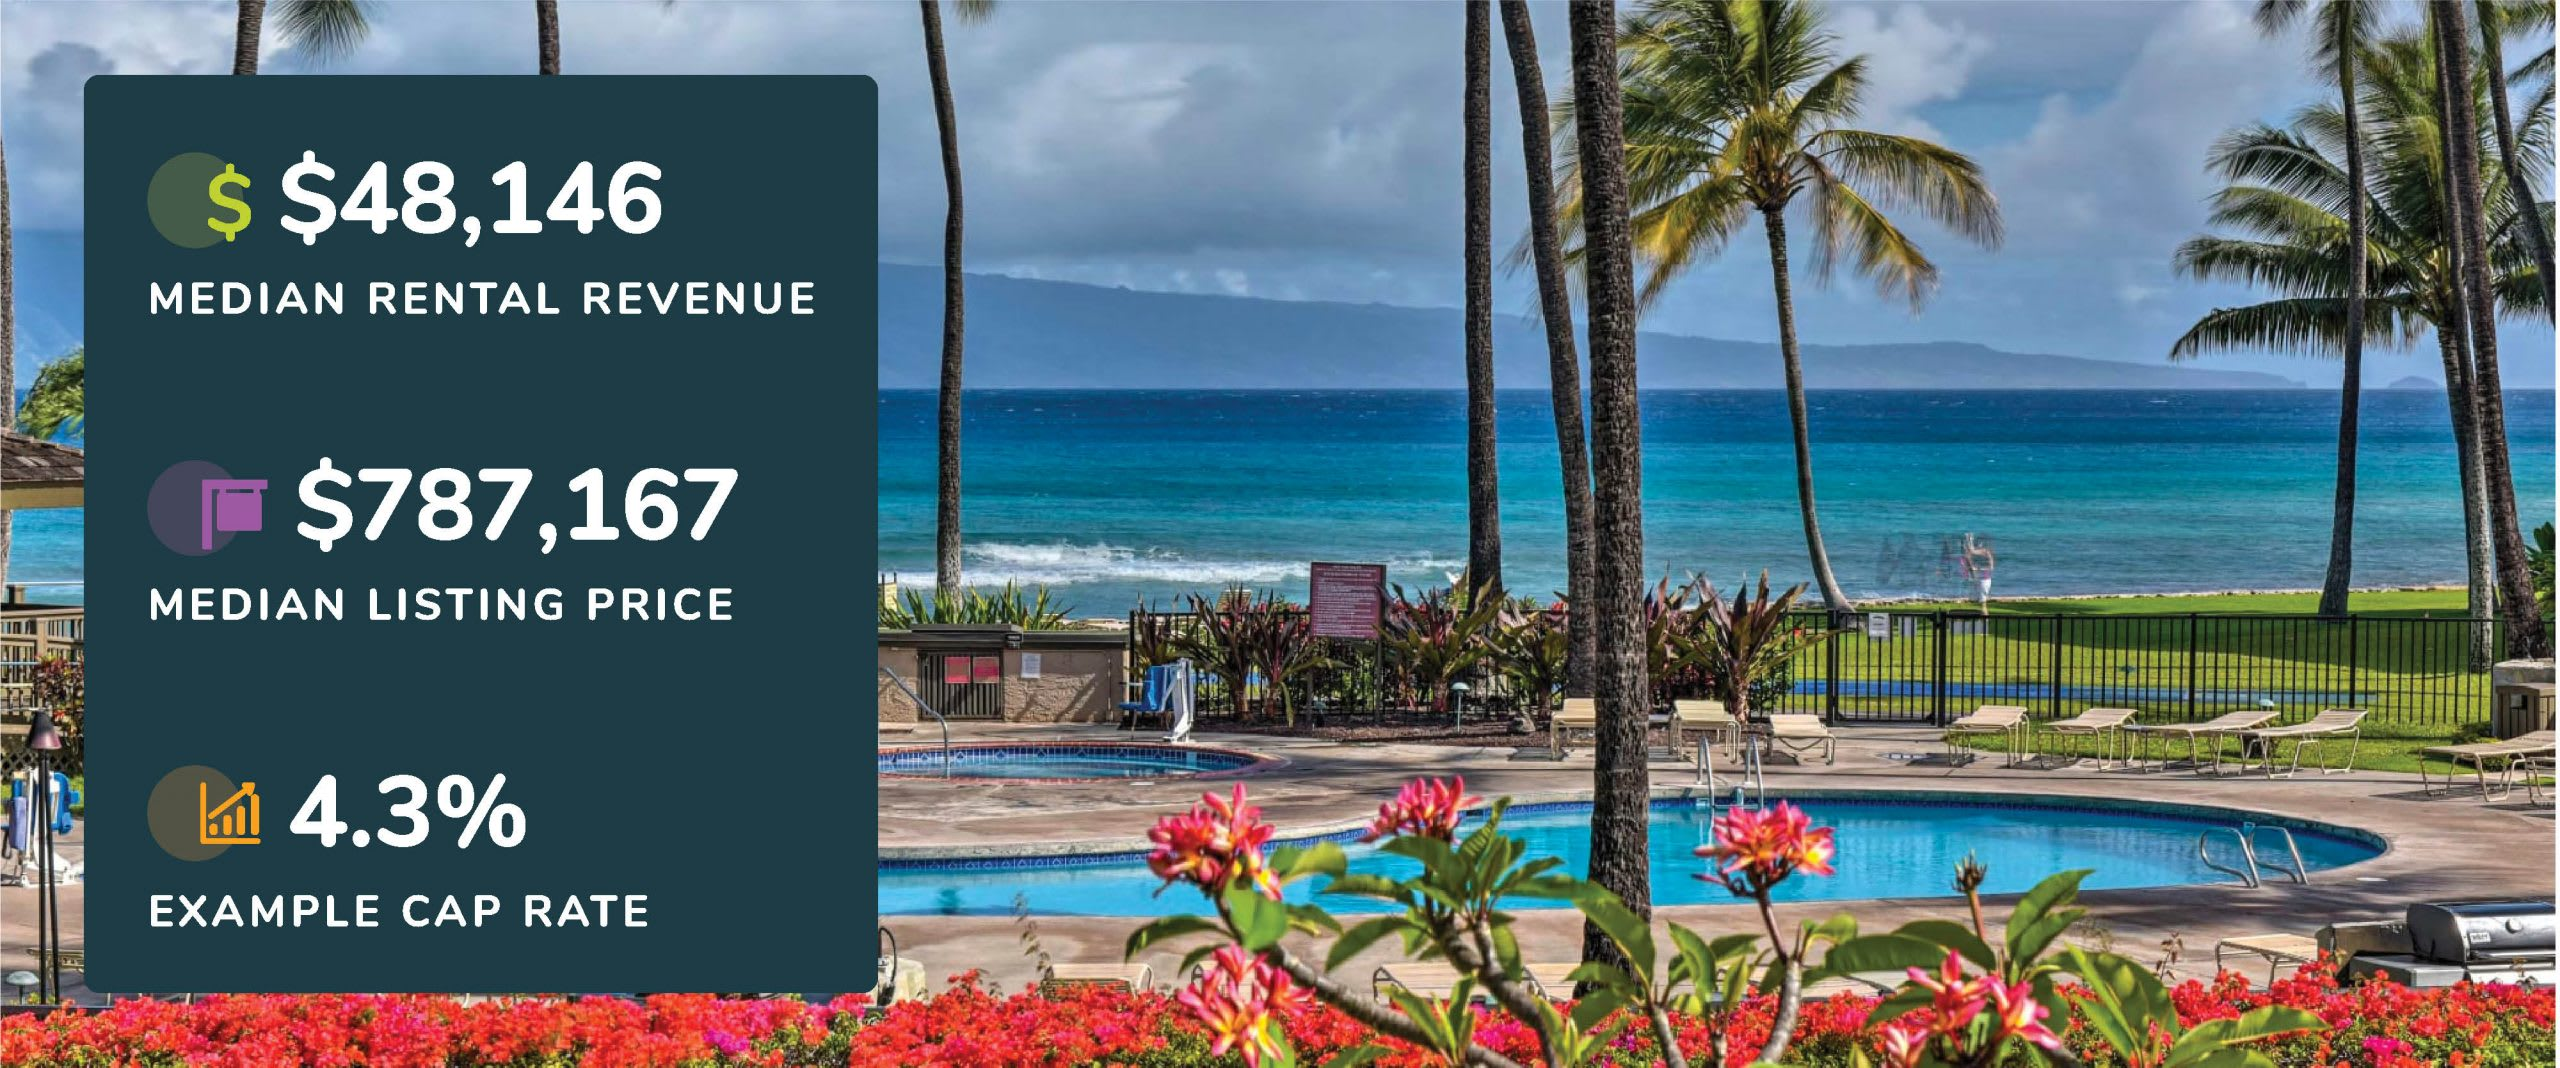 Graphic showing Lahaina, Hawaii median rental revenue, listing price, and example cap rate with a picture of a pool with ocean views